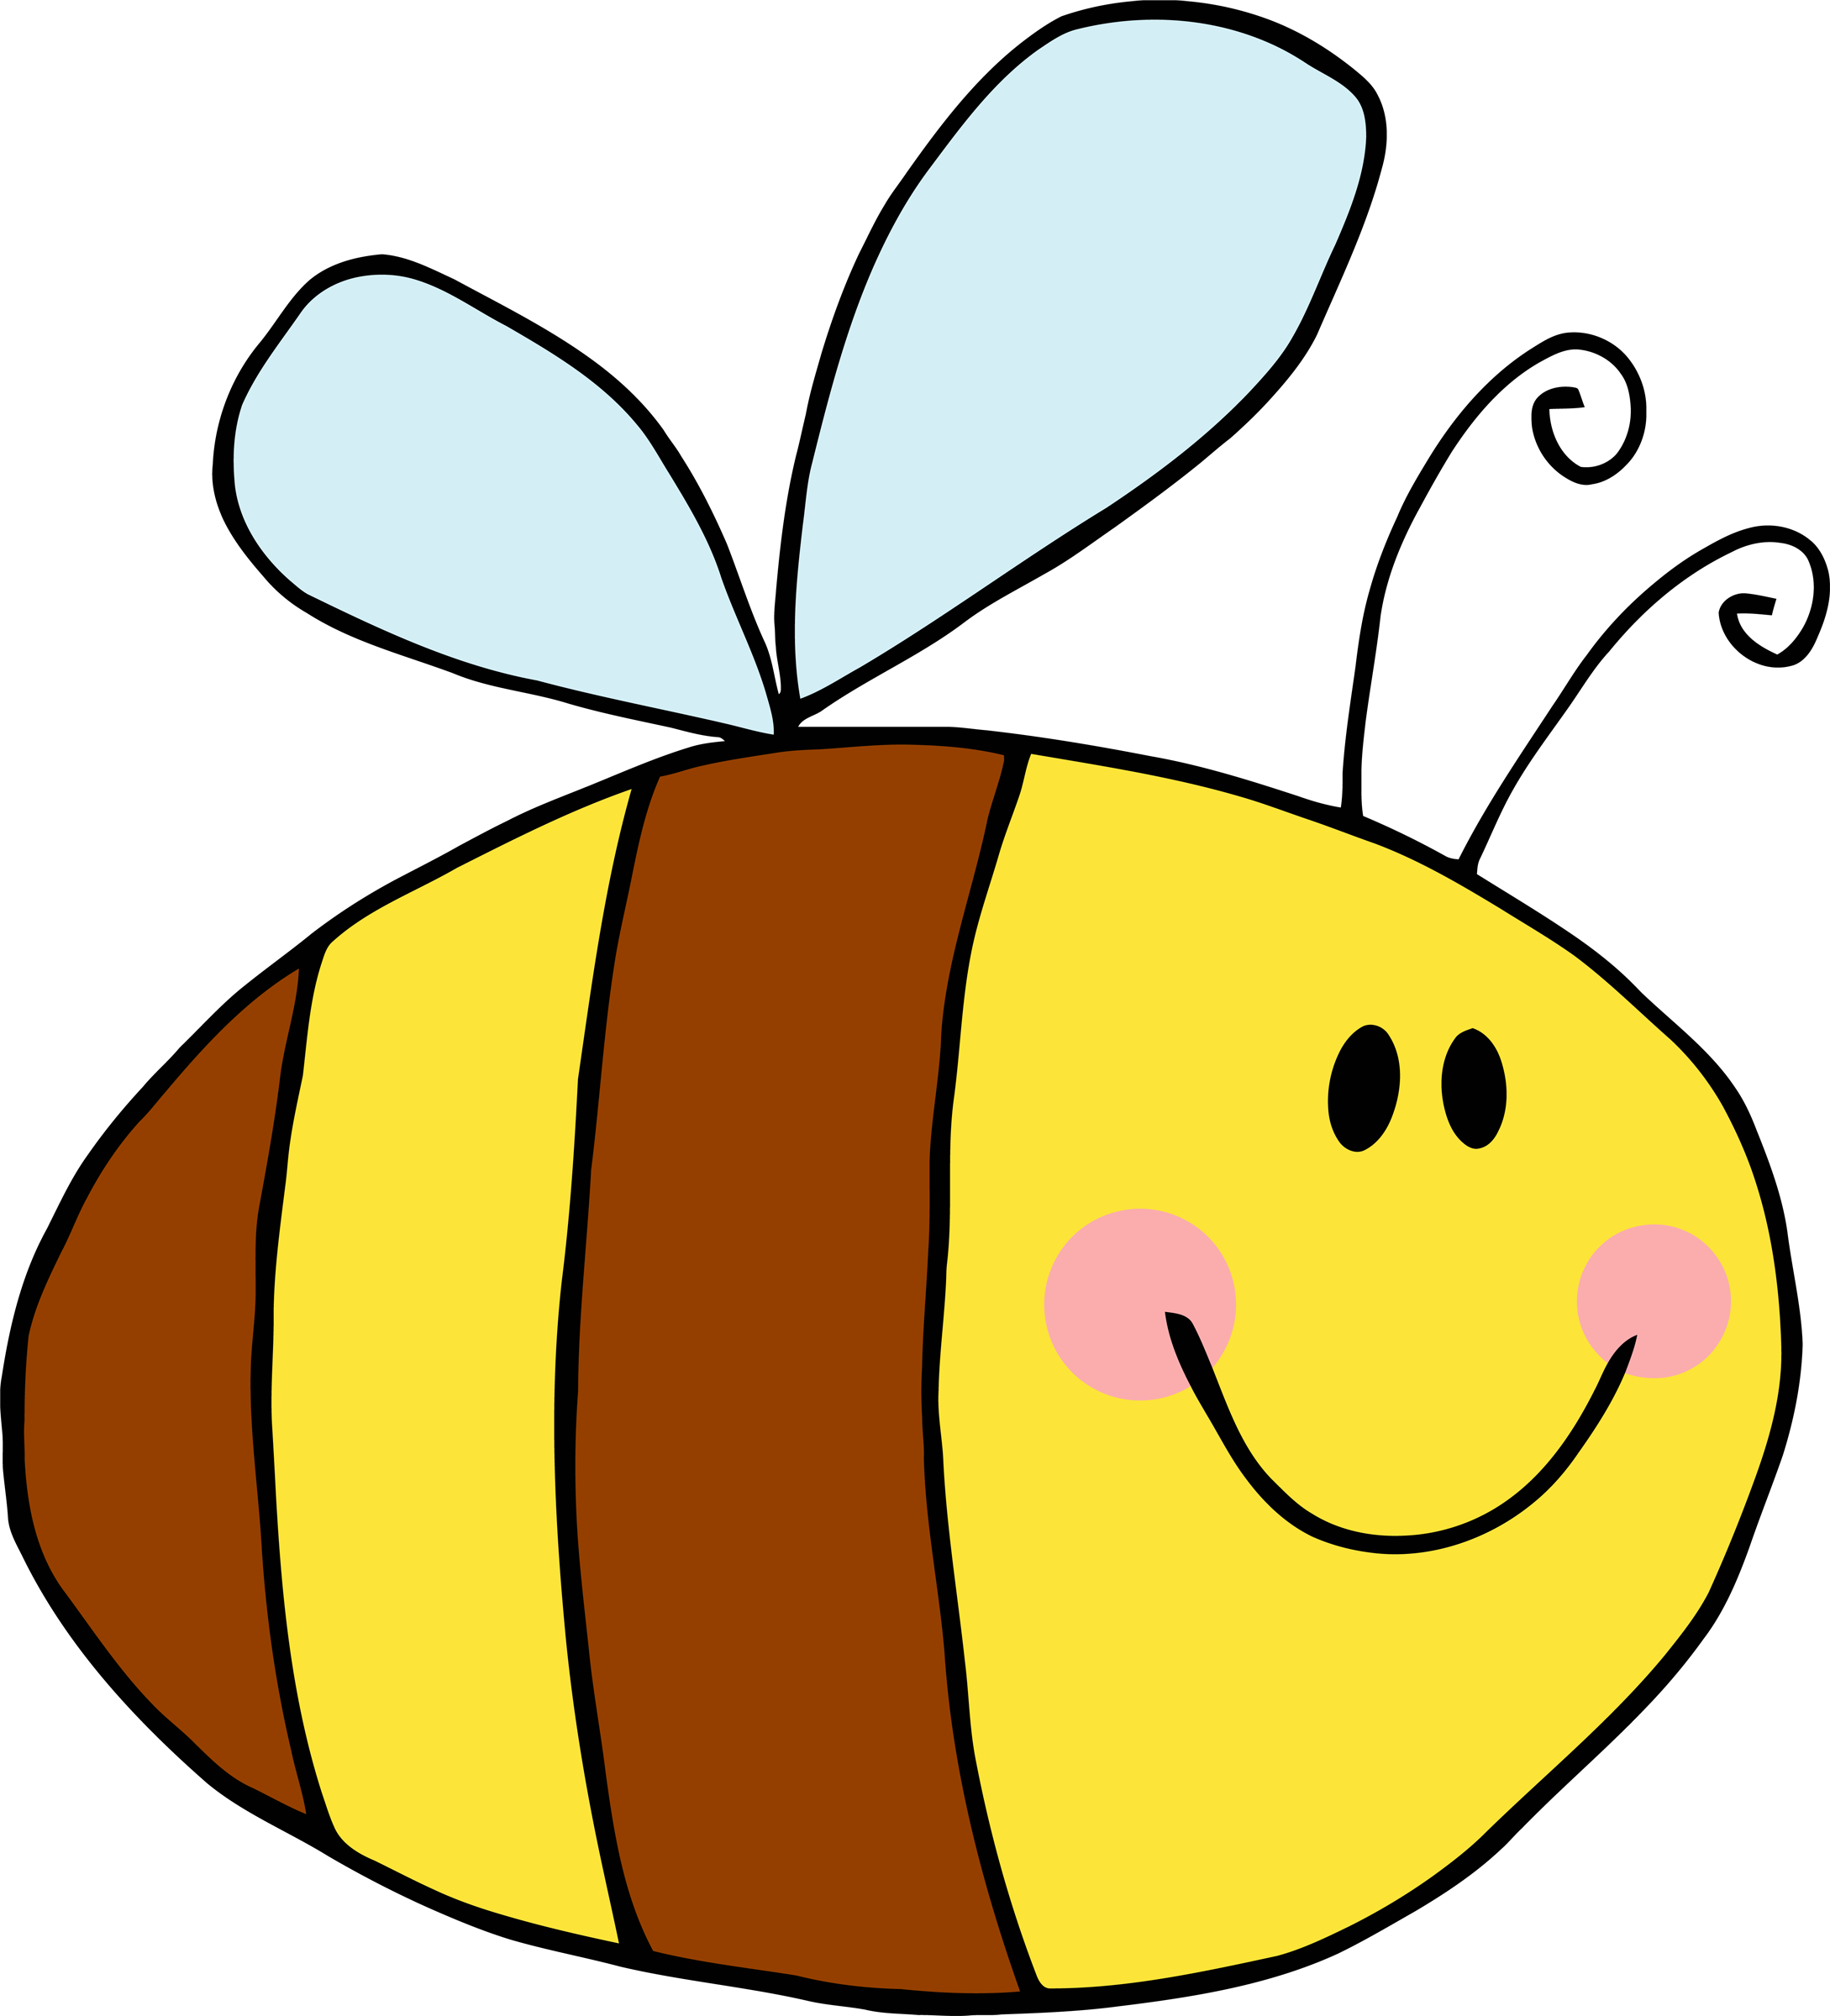 Bees transparent easy cartoon. A picture of bee